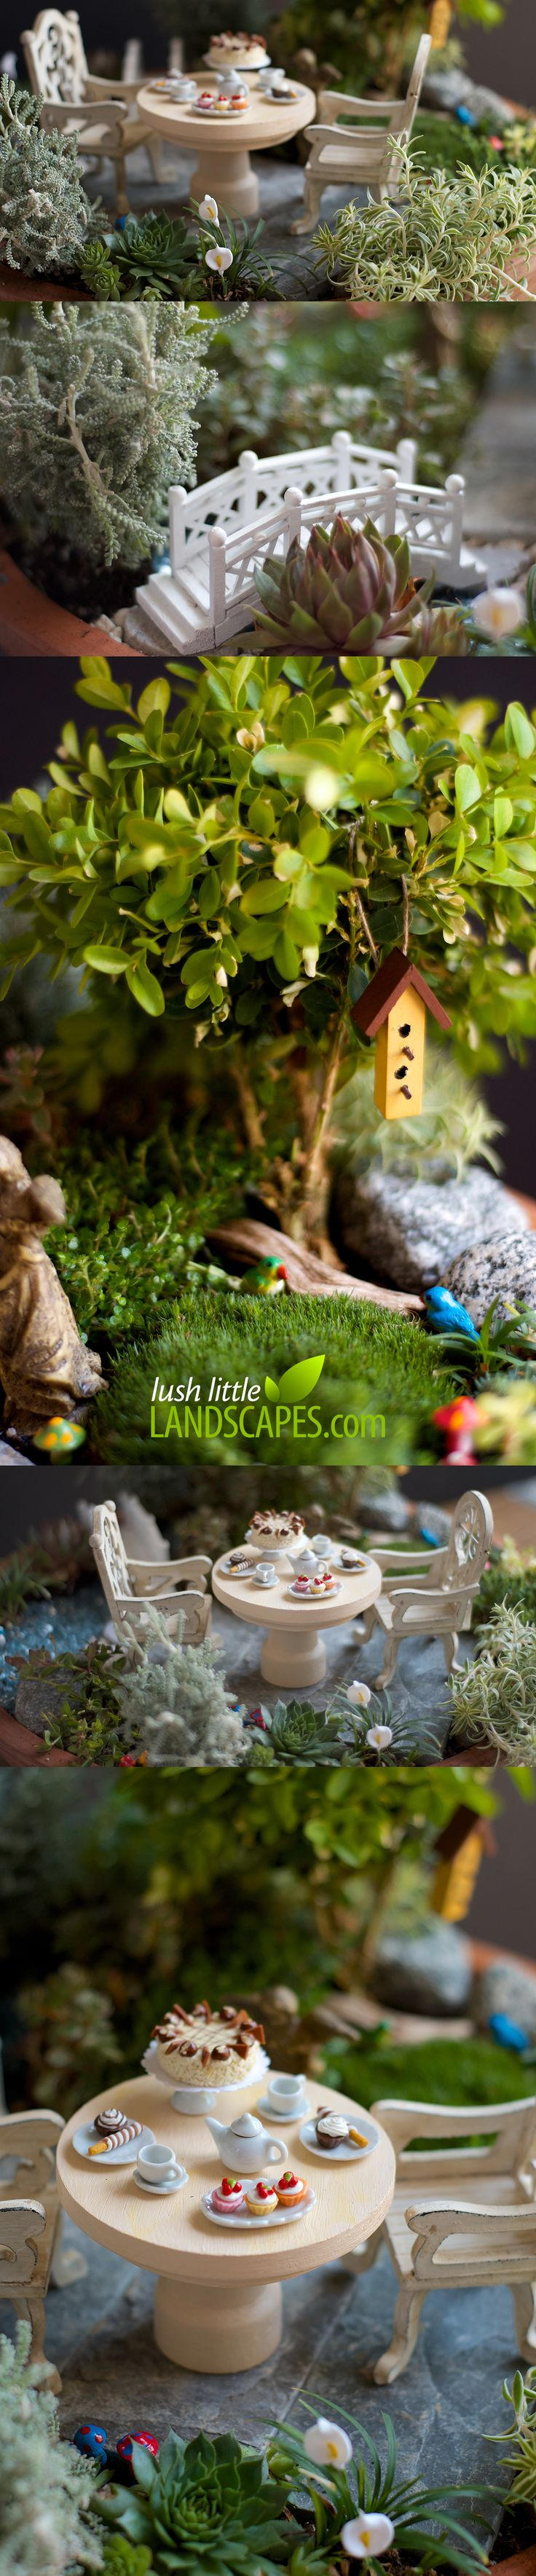 Miniature Garden Tea Party   Lush Little Landscapes look like a real garden - complete with a mini birdhouse, tiny birds, little mushrooms, miniature footbridge, and a dessert of cupcakes and cake with your tea.